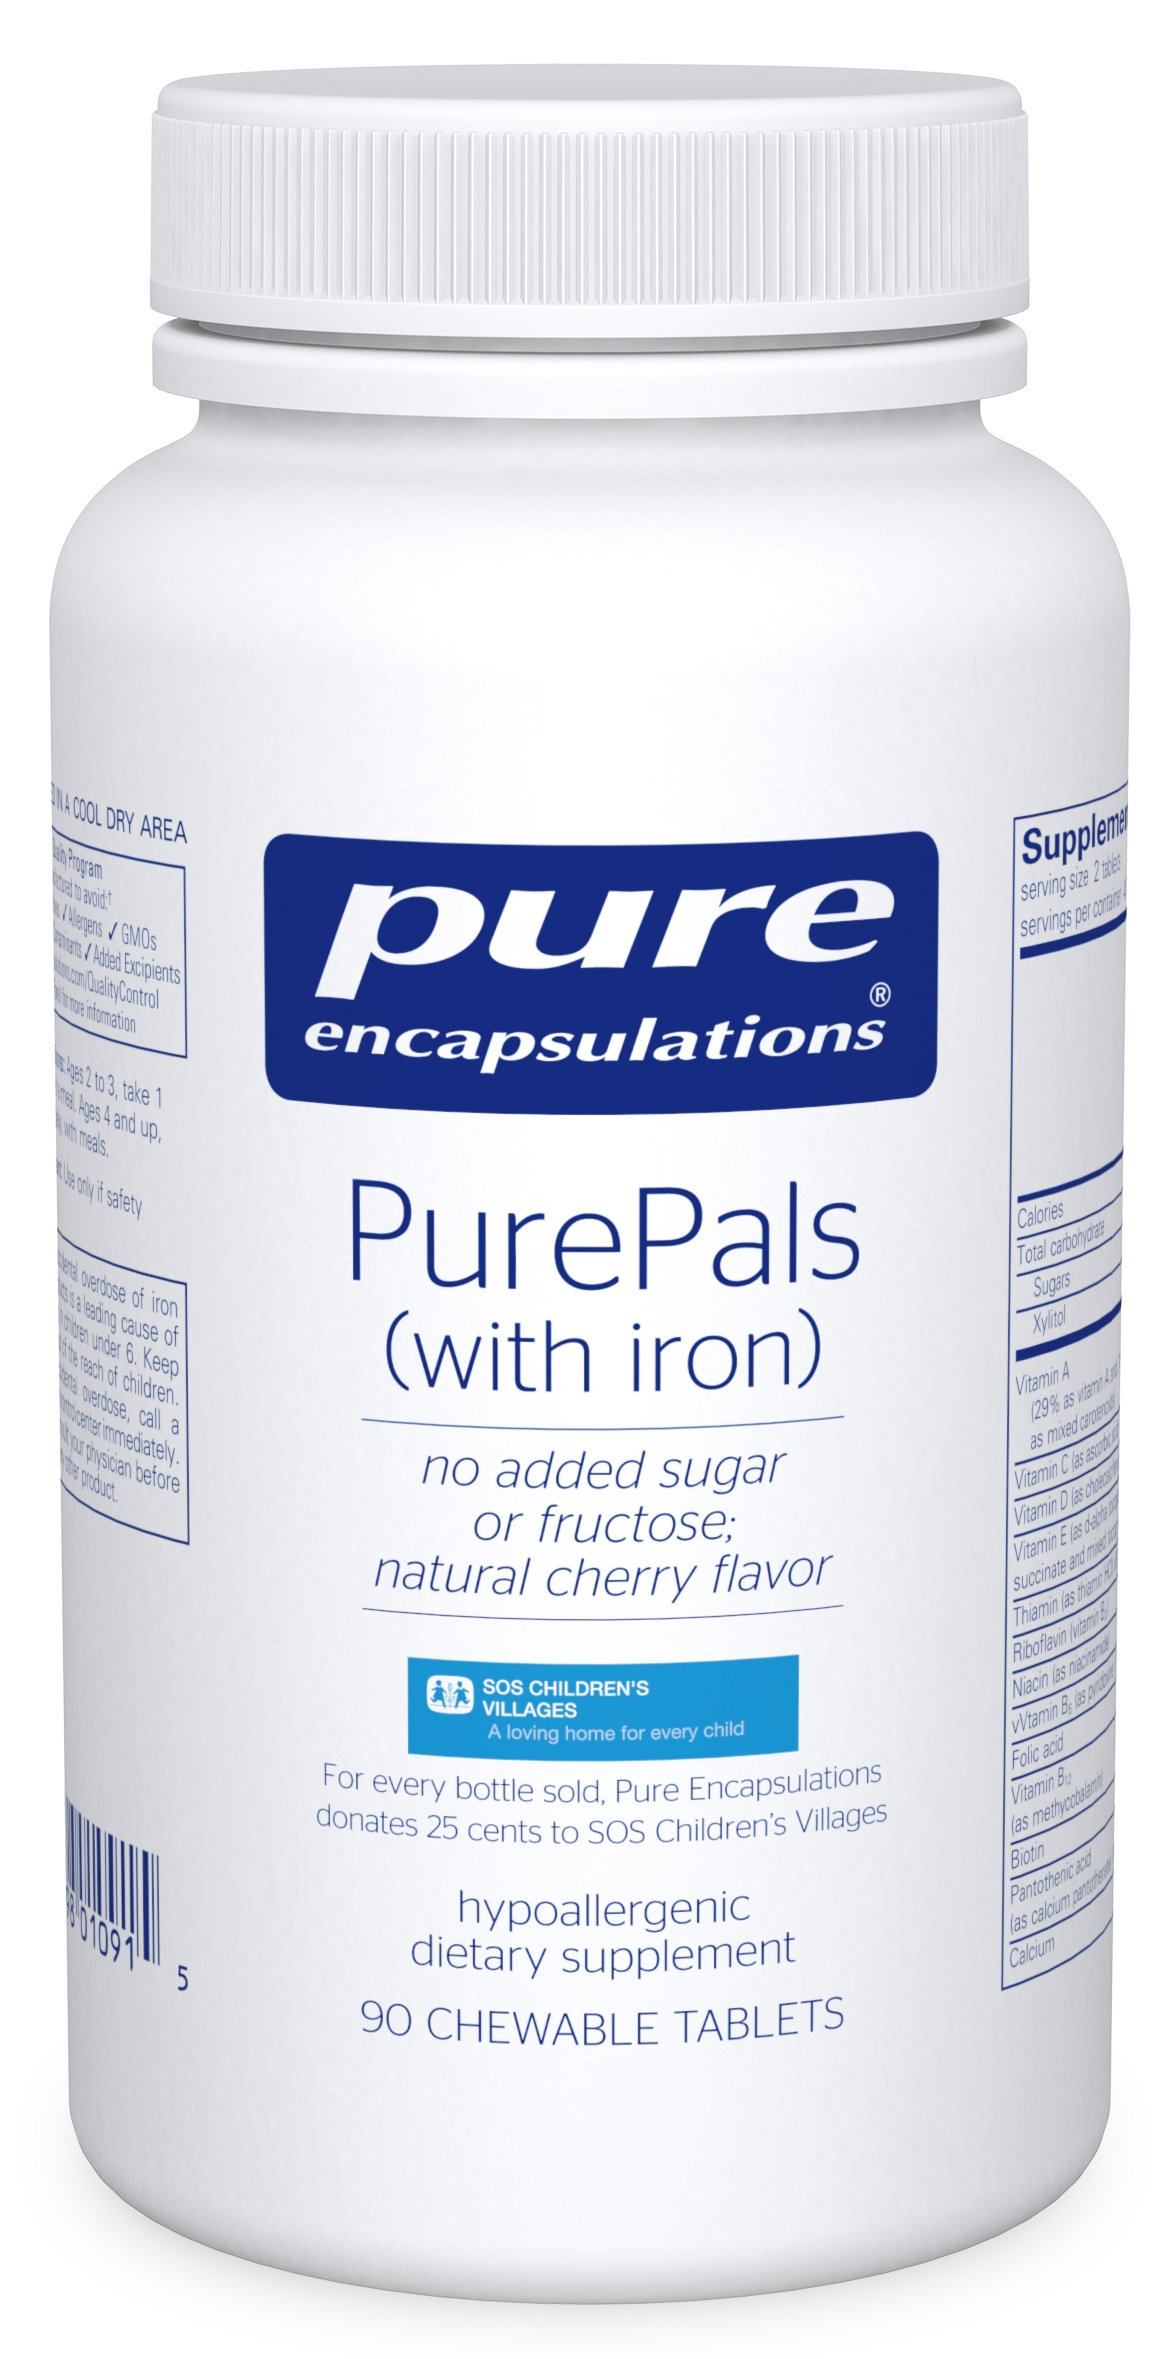 Pure Encapsulations PurePals (with iron)